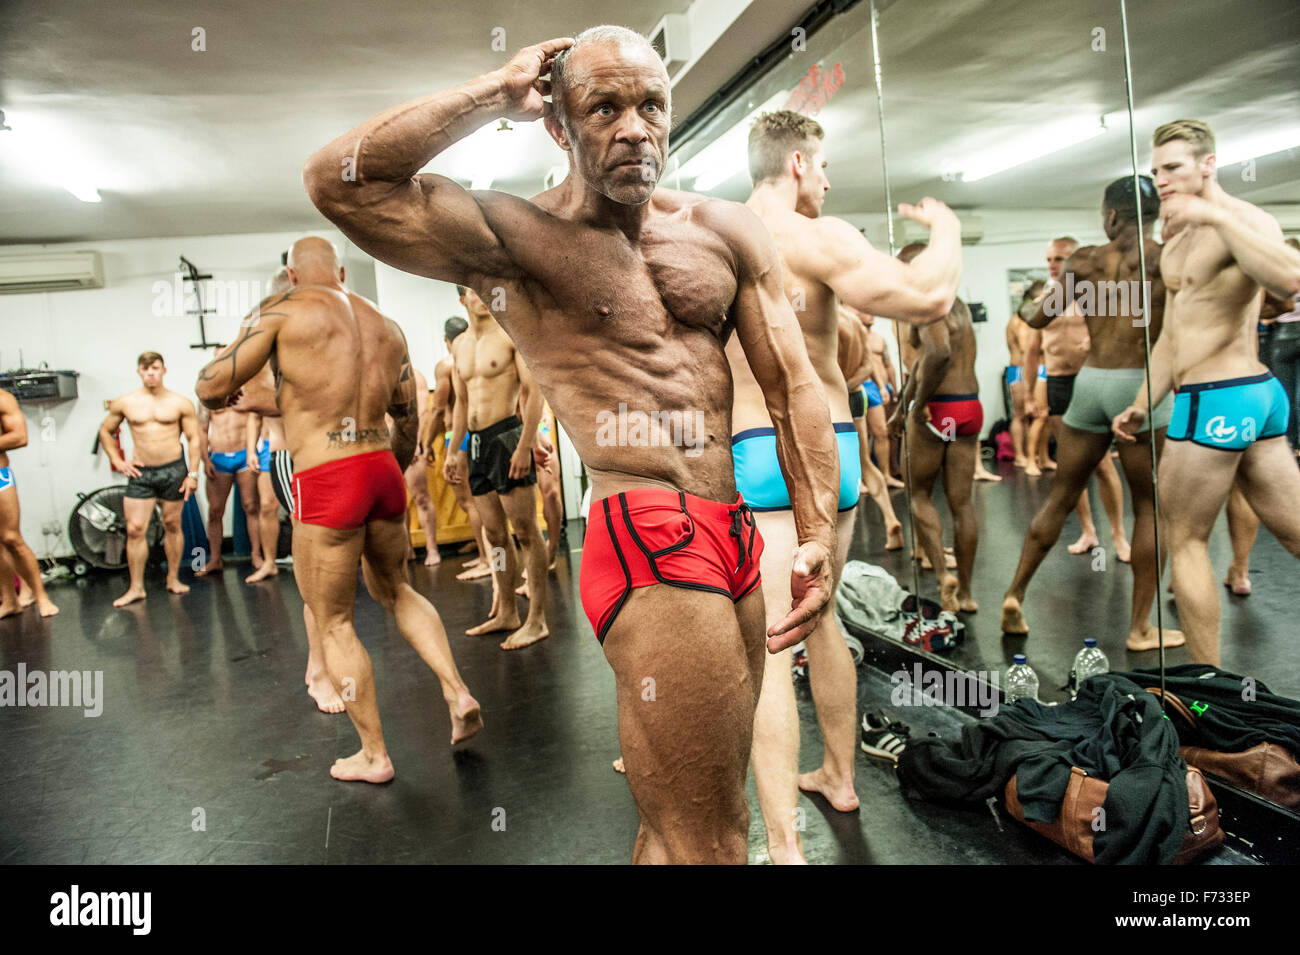 Kevin Beckman 49 personal trainer   contestants from all walks of life prep for the Pure Elite fitness model competition - Stock Image